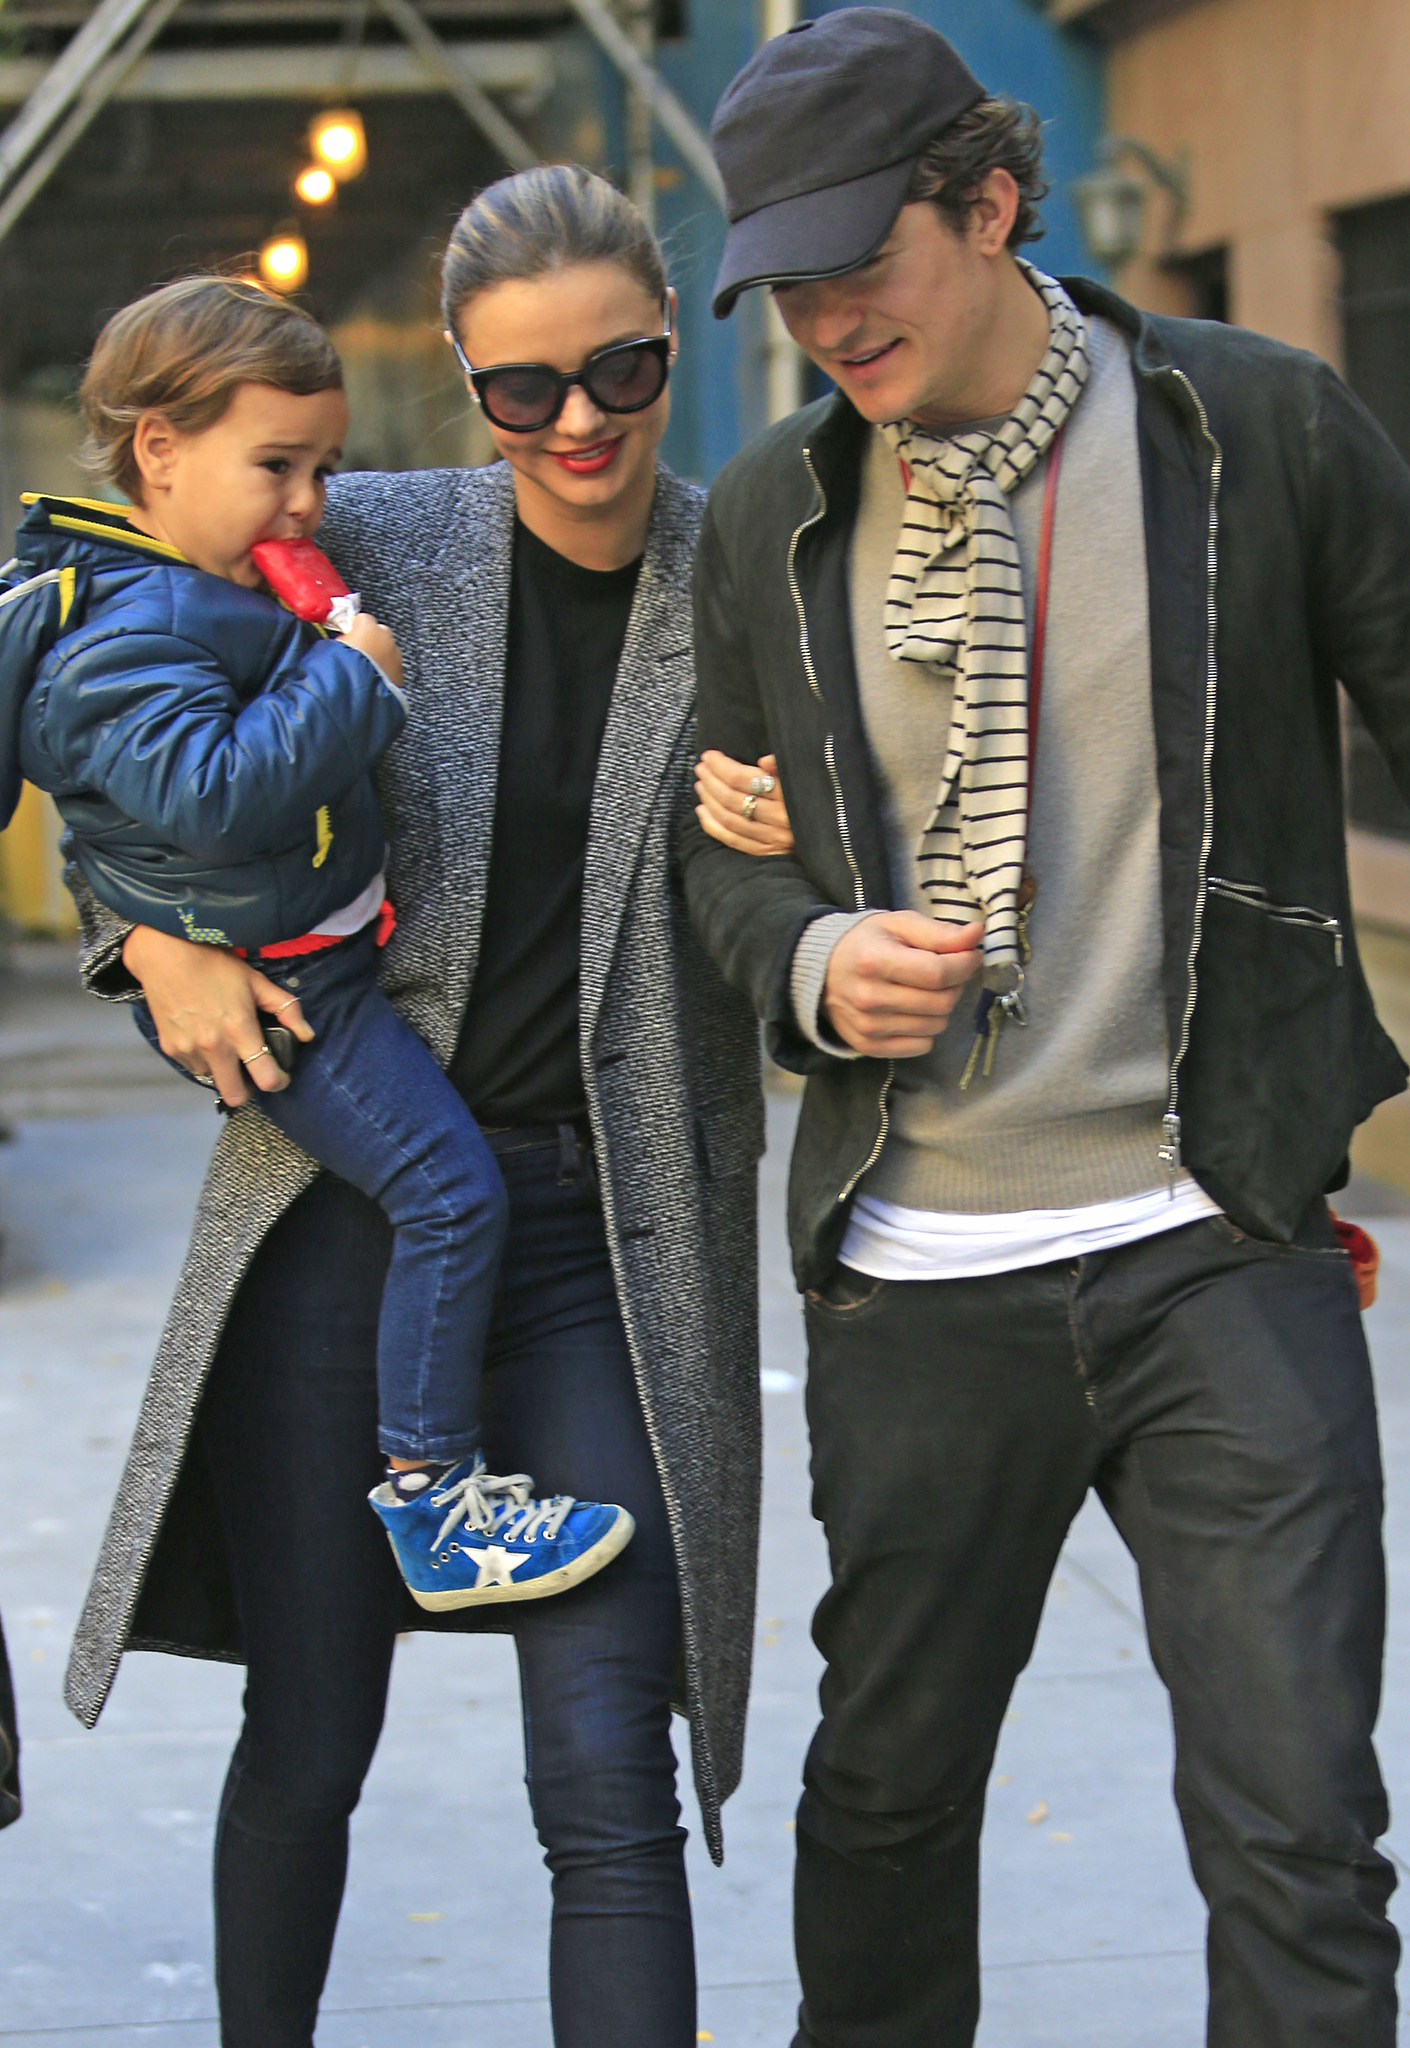 Flynn, Miranda, and Orlando take a stroll after the break up. (Splash News)